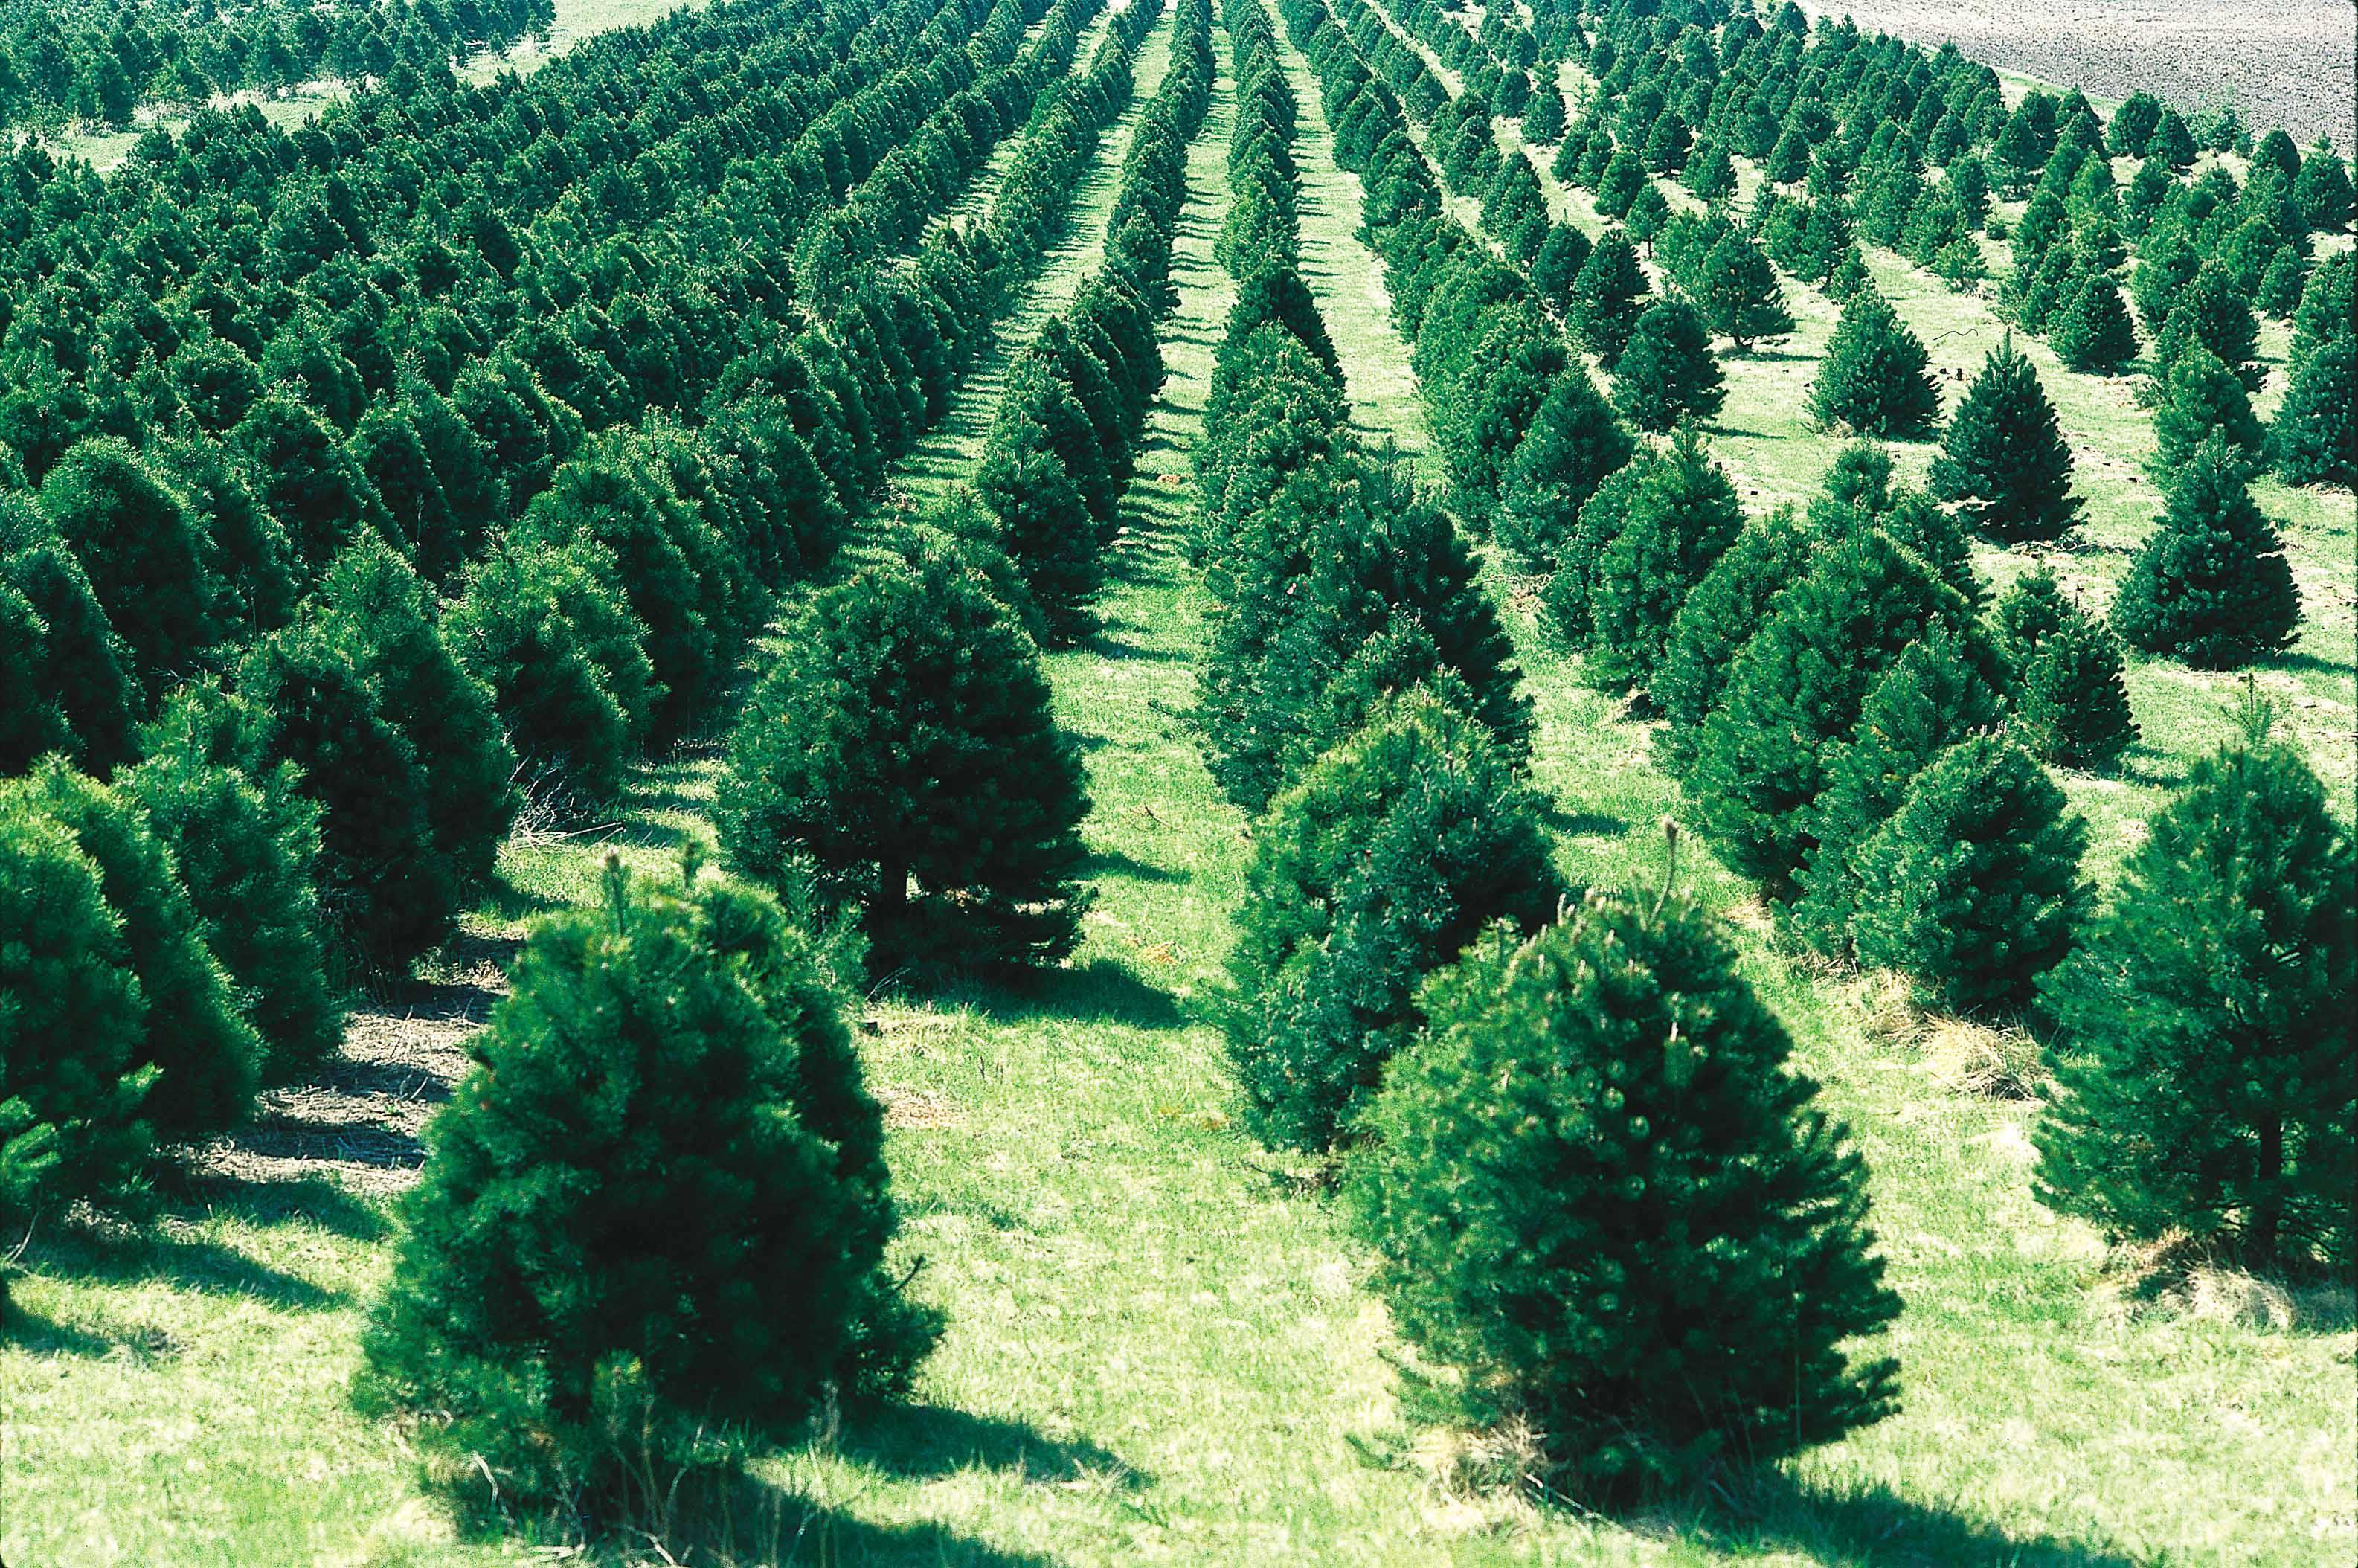 NJ Christmas Tree Farms Archives - The Corvallis Advocate